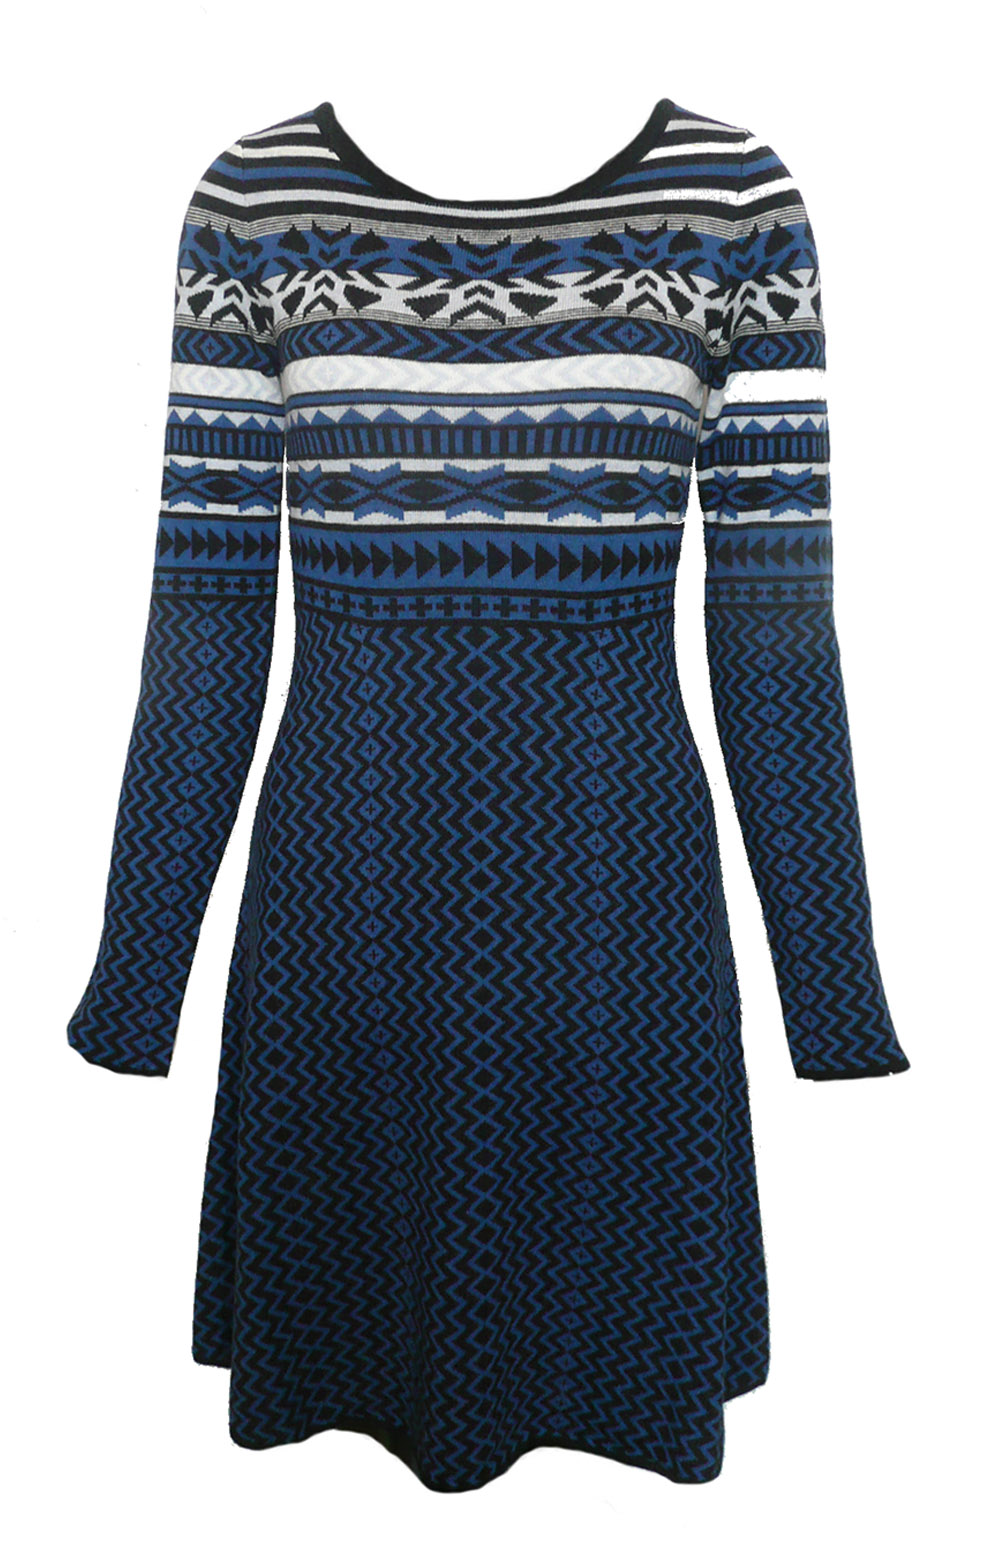 dress blue pattern knit.jpg